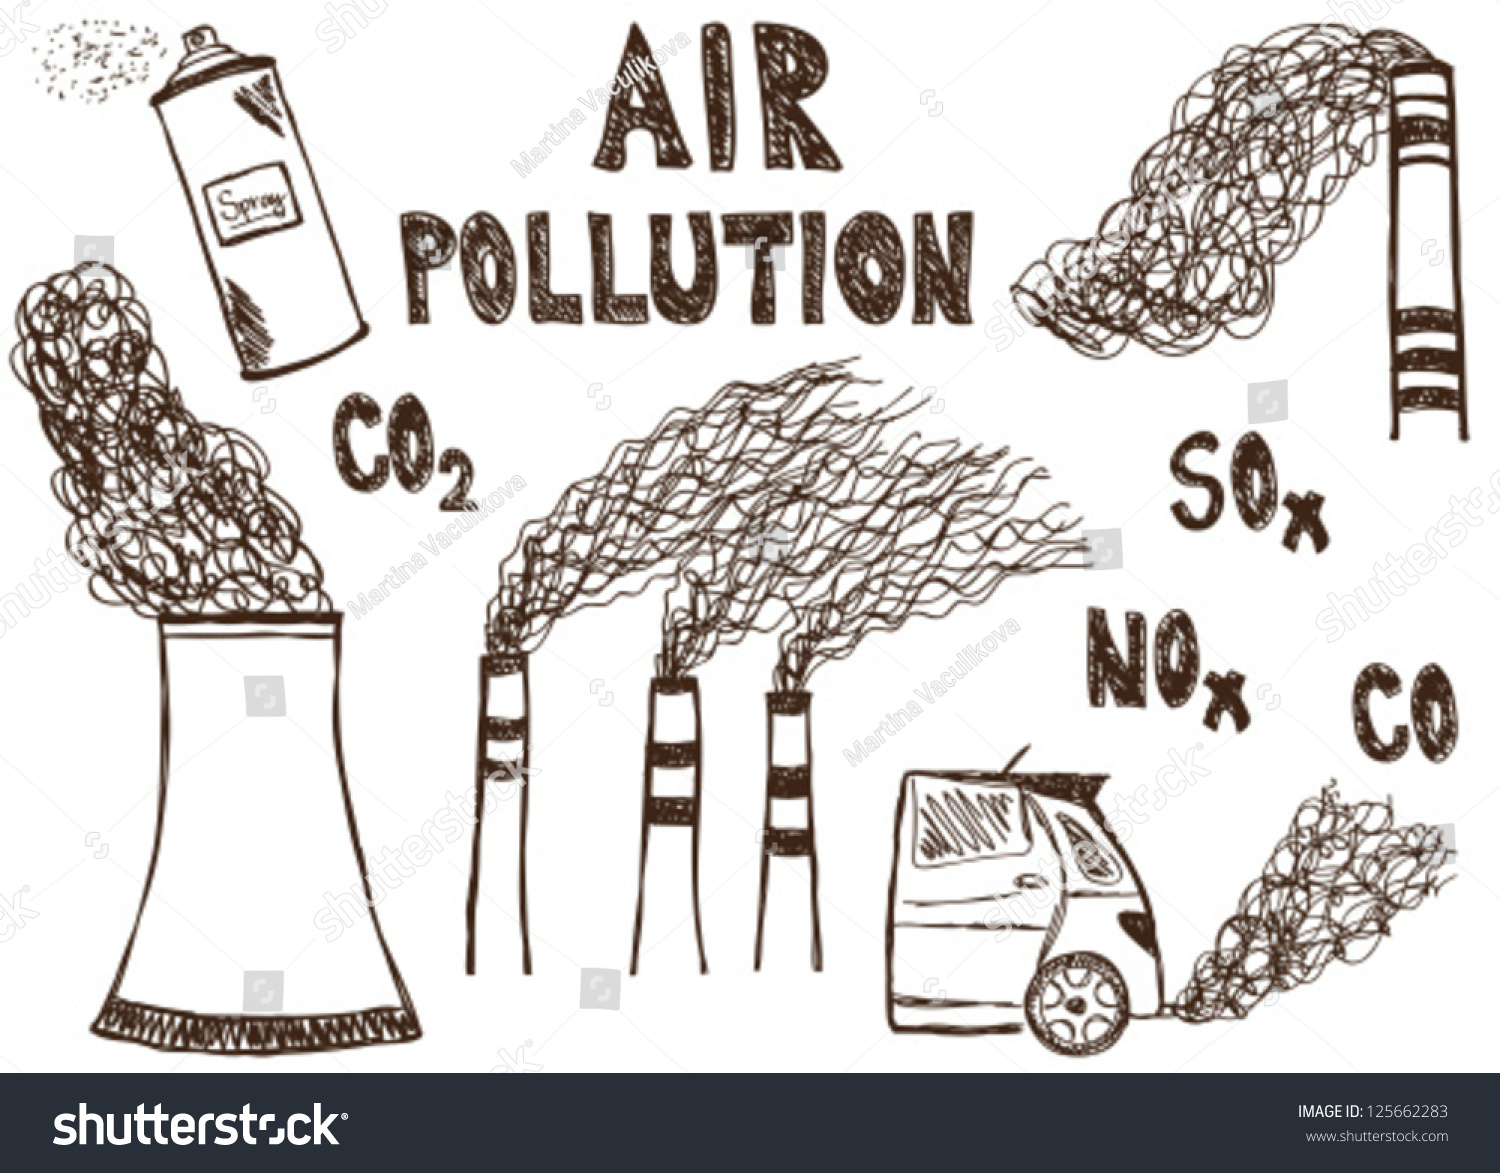 Illustration of air pollution doodle drawings on white background